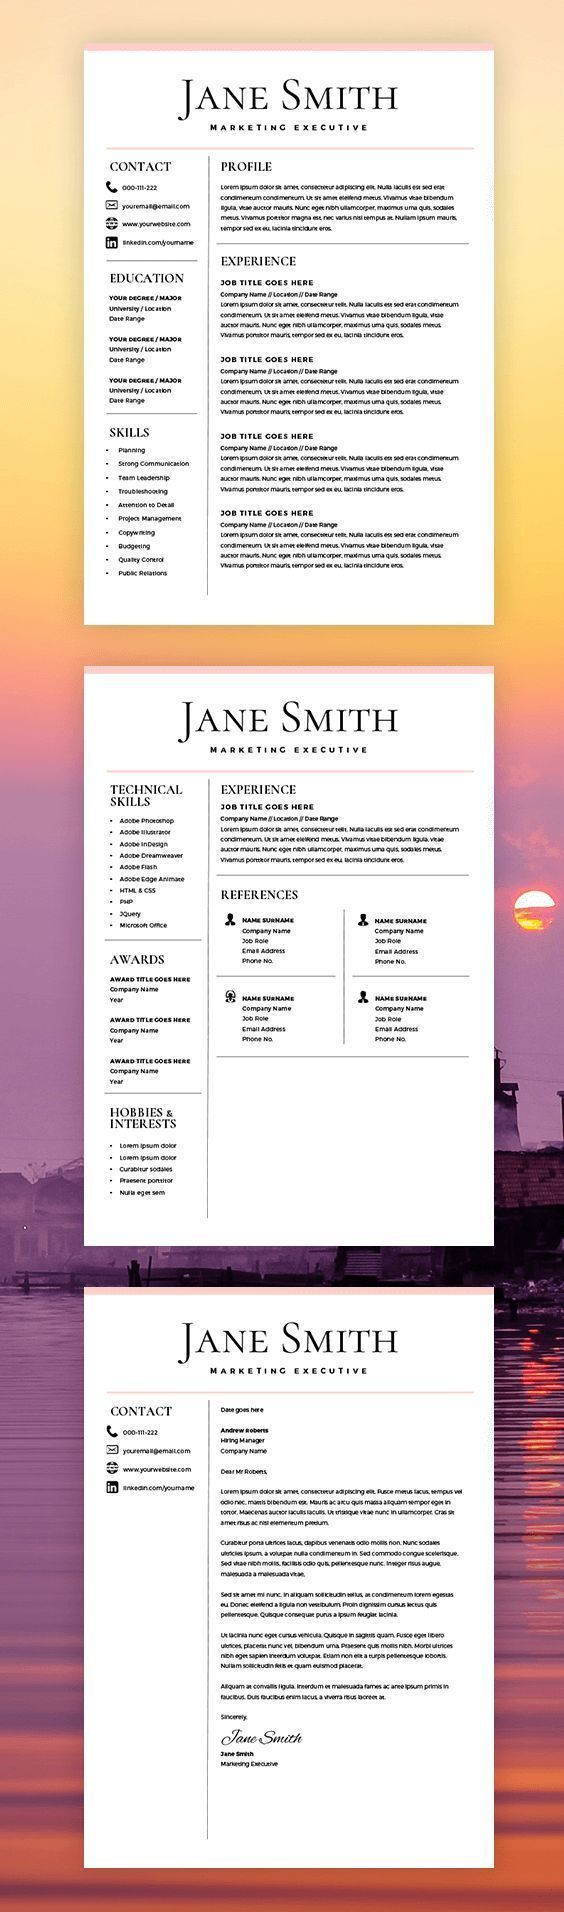 receptionist sample resume%0A Resume Template  CV Template  Free Cover Letter  MS Word on Mac   PC